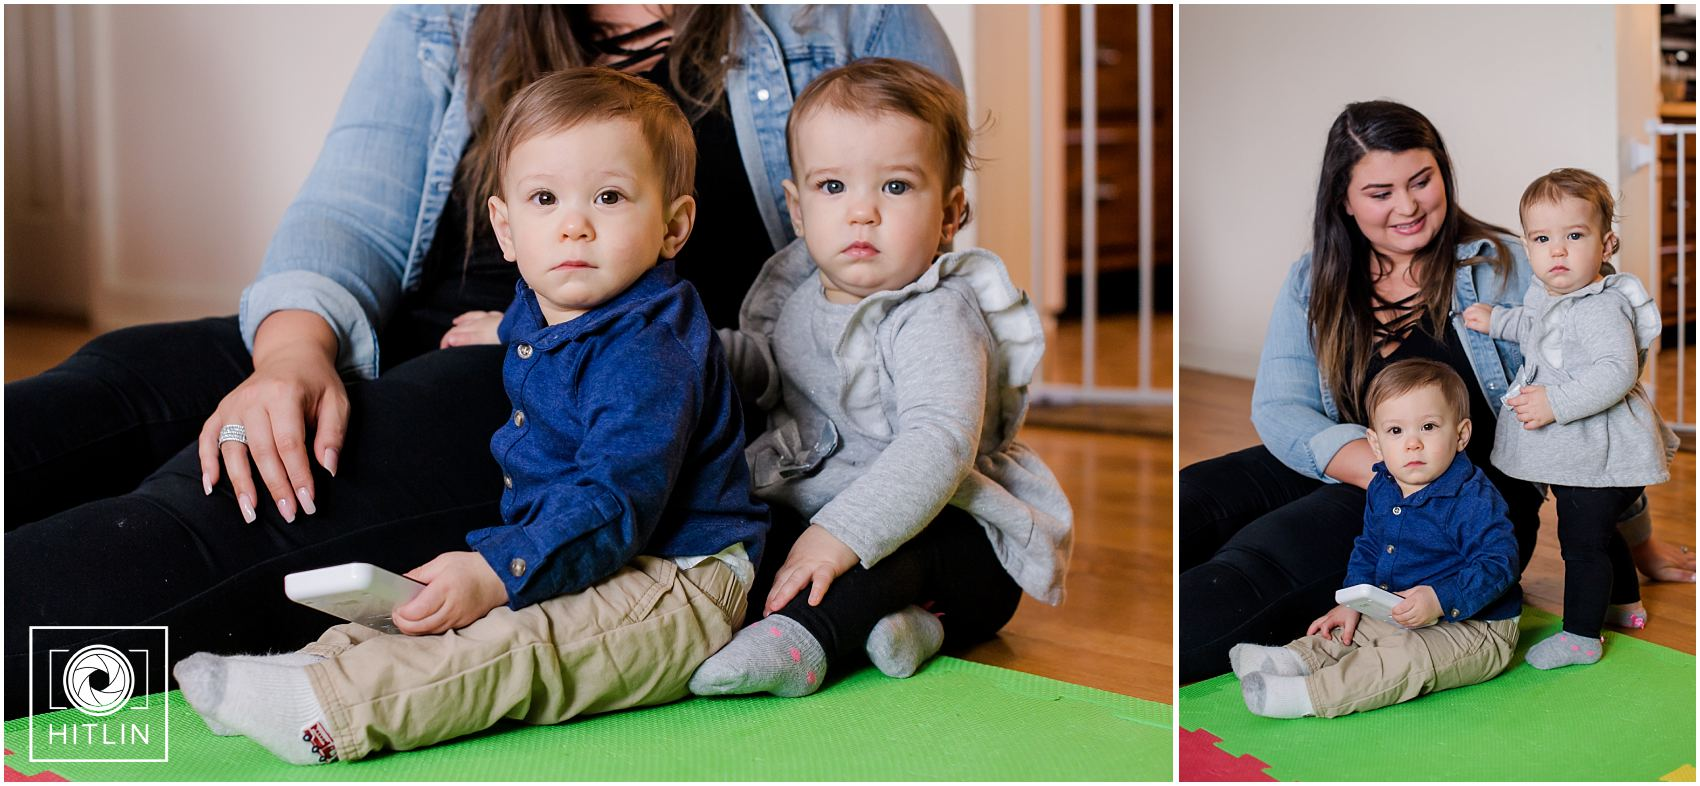 The Bryans' Twins turn 1